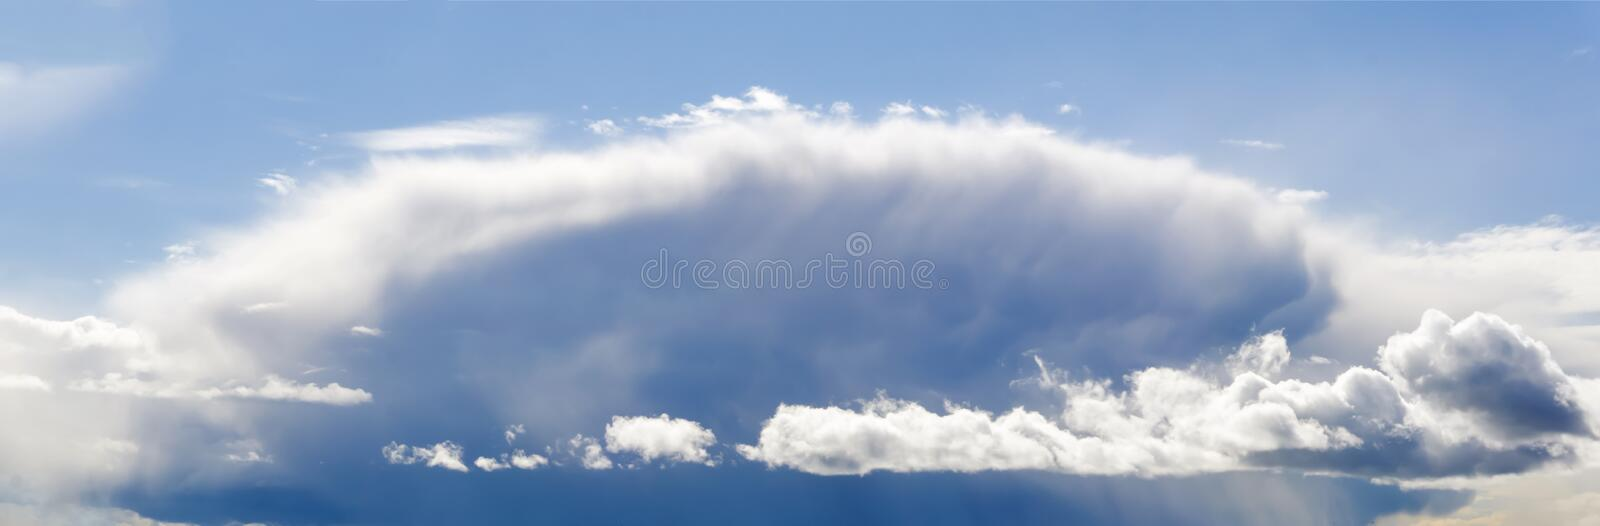 Big cloud before a thunderstorm royalty free stock image